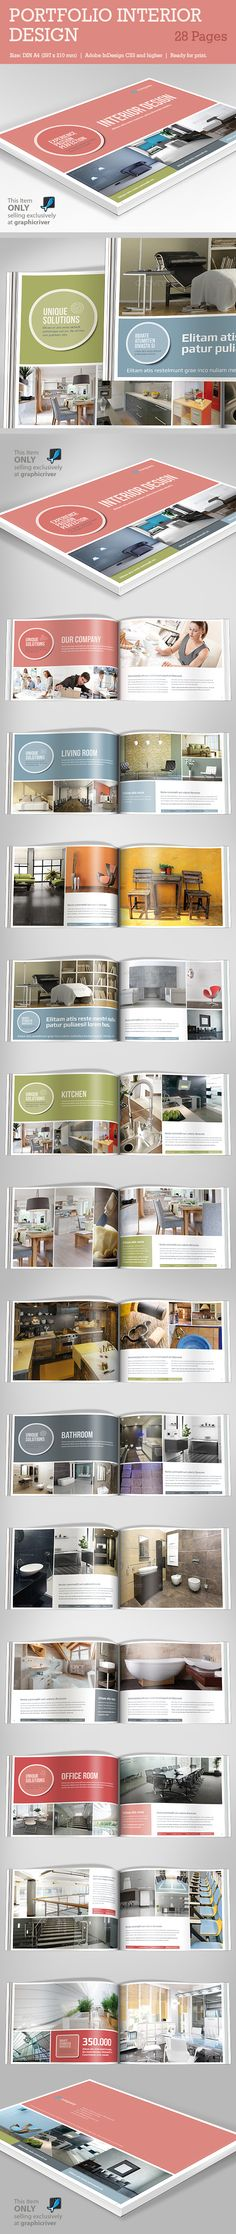 Interior Design Square Brochure Brochures, Brochure template and - interior design brochure template